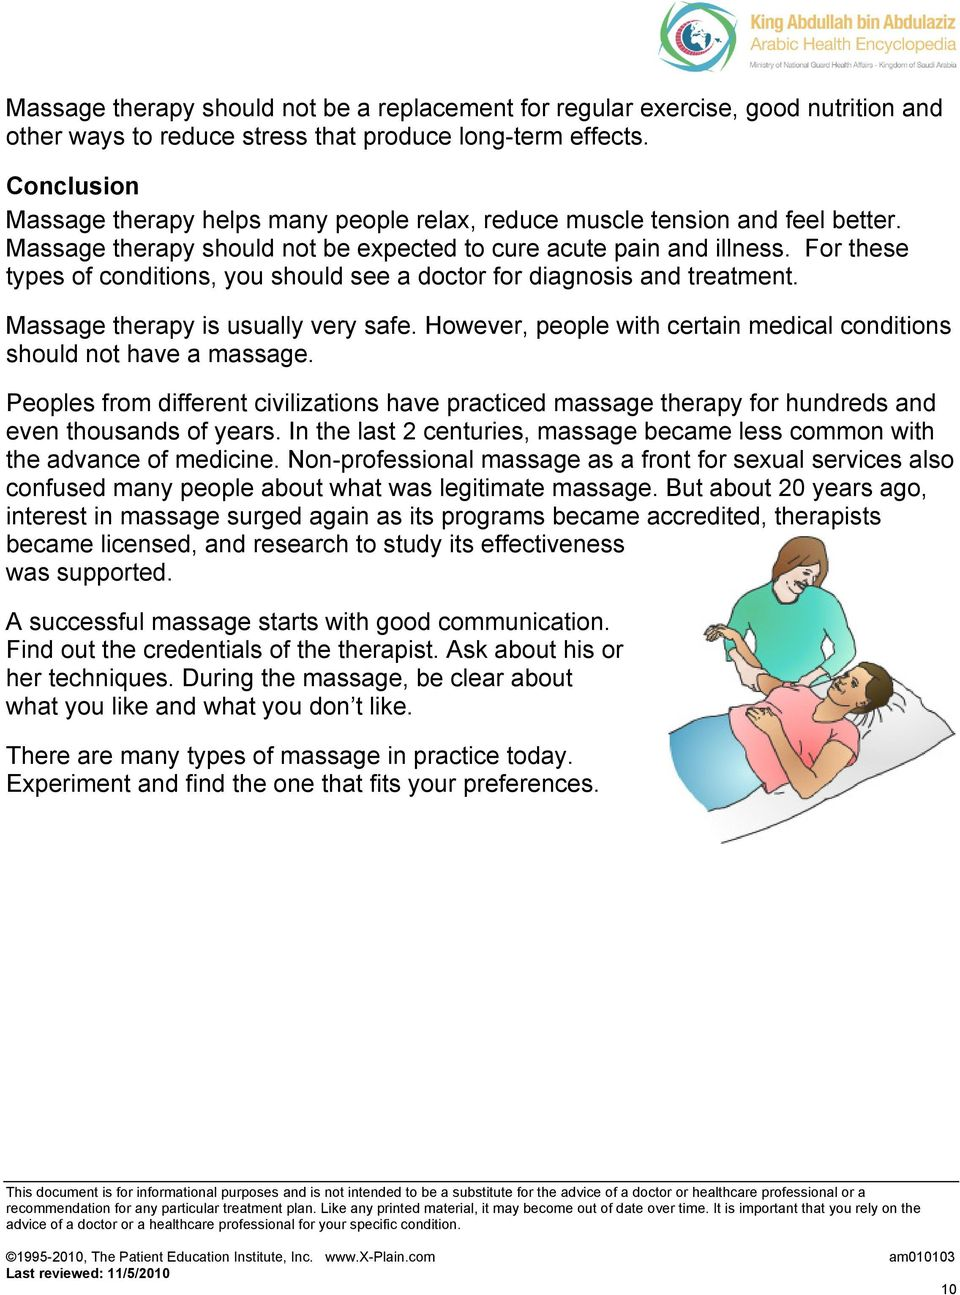 For these types of conditions, you should see a doctor for diagnosis and treatment. Massage therapy is usually very safe. However, people with certain medical conditions should not have a massage.